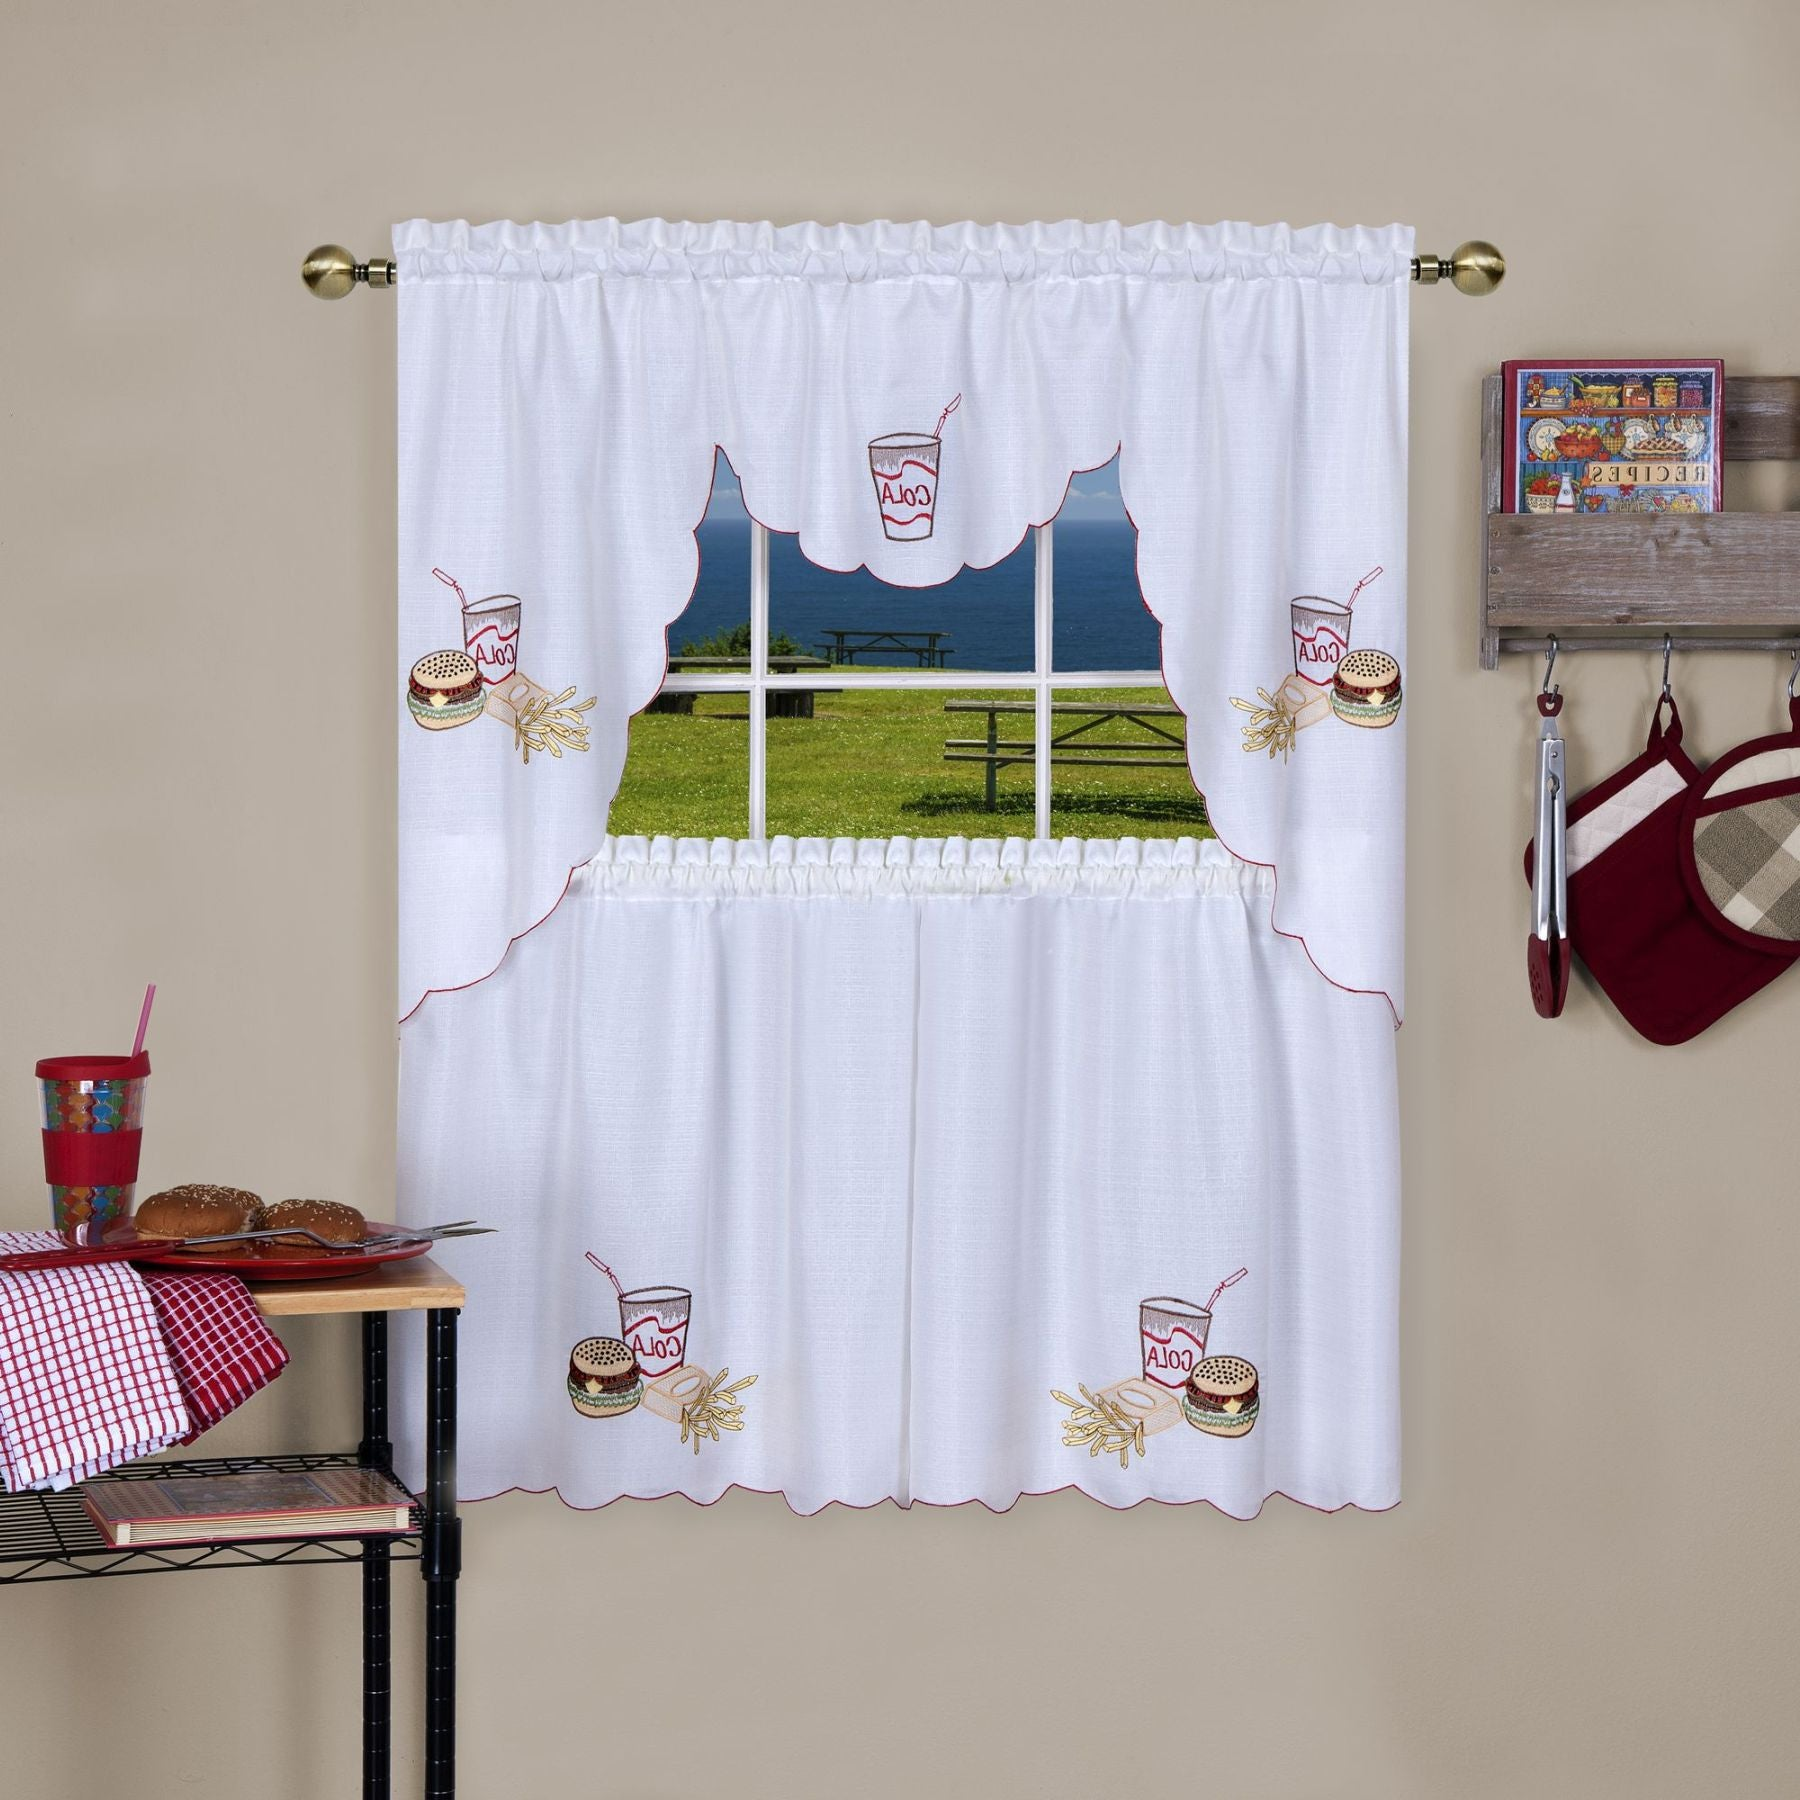 Traditional Elegance Fast Food Embellished Tier and Swag Window Curtain Set - 58x36